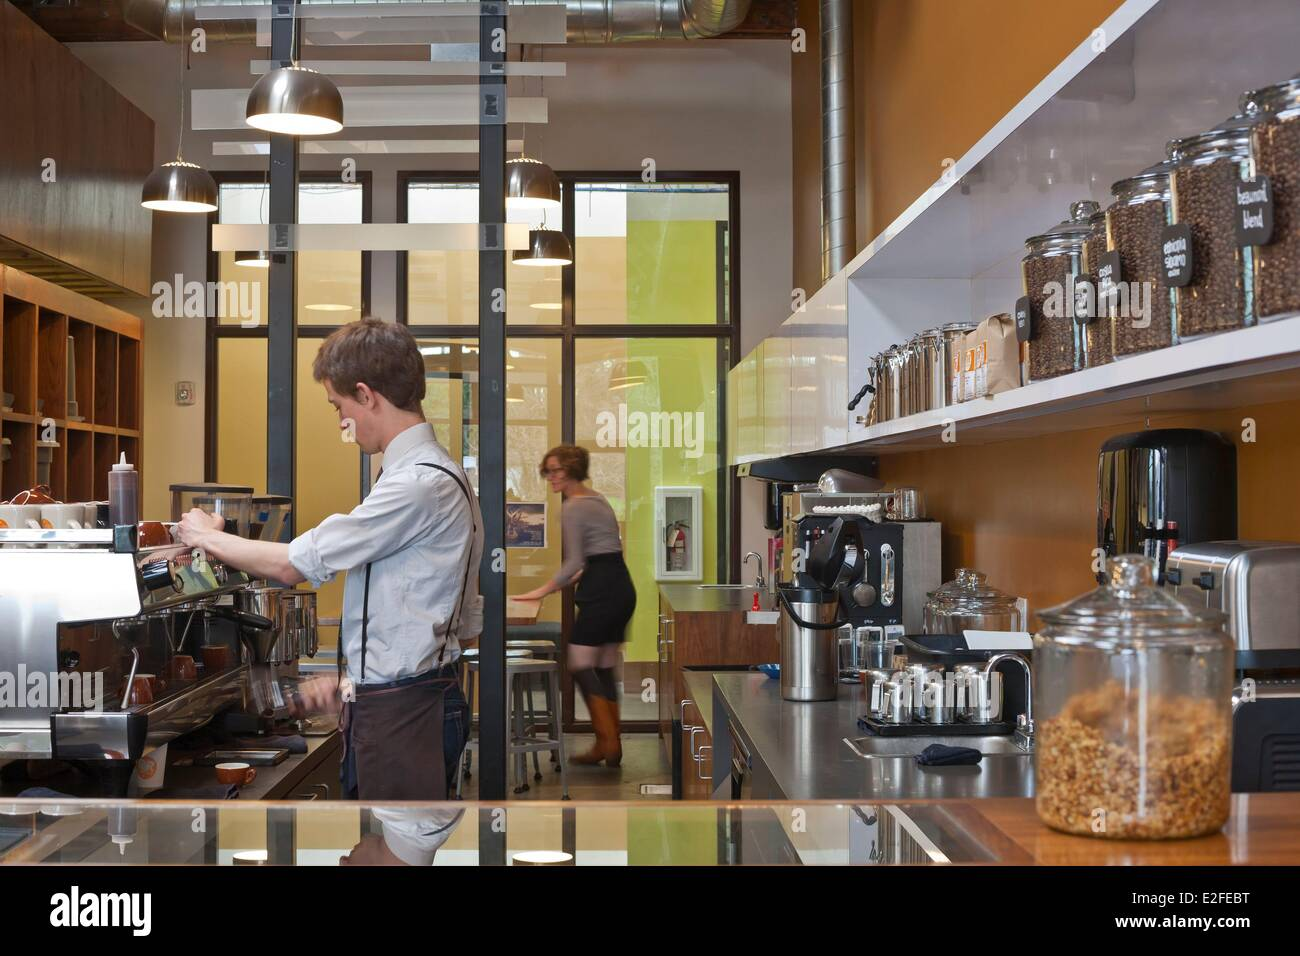 United States, Oregon, Portland, North Williams, Ristretto Roasters cafe - Stock Image